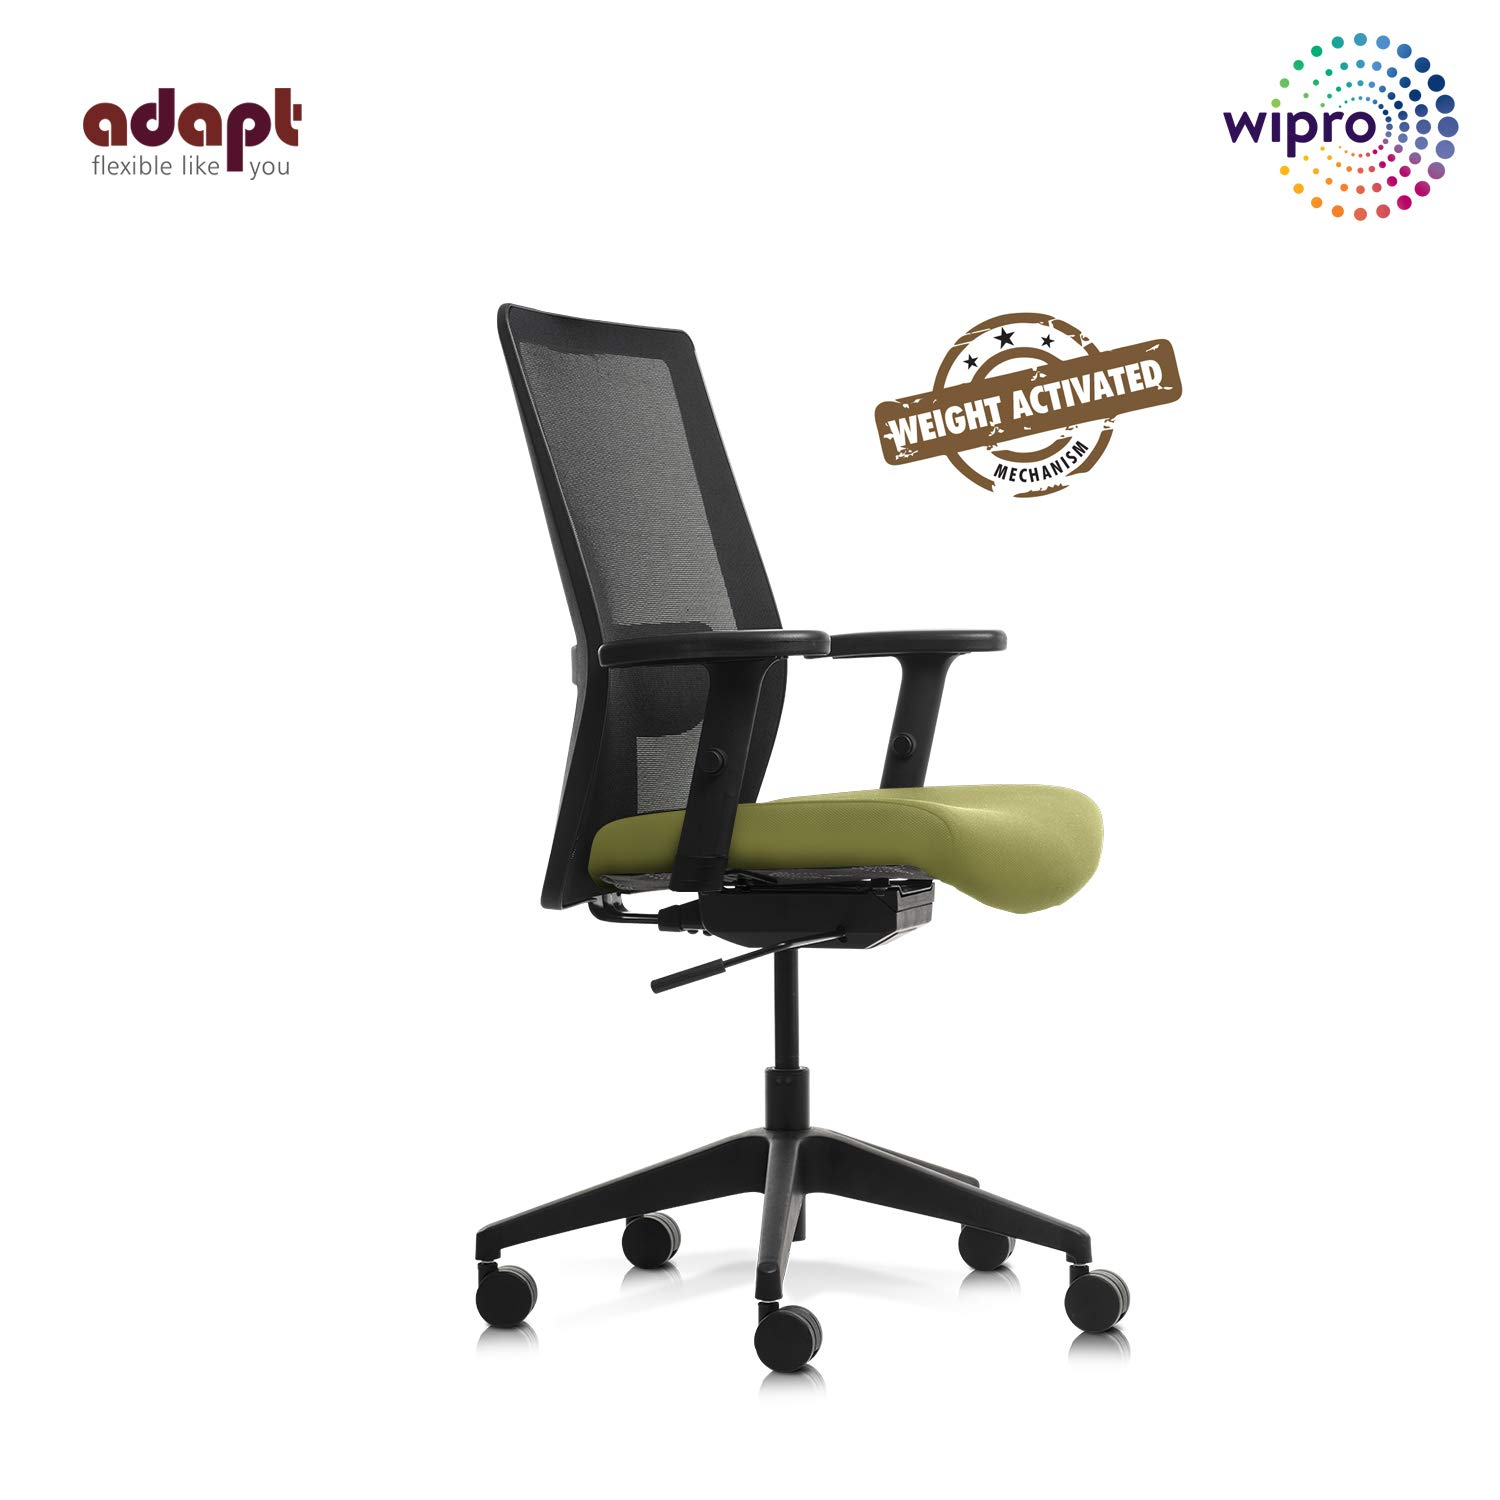 Wipro Furniture Adapt Medium Back Executive Ergonomic Office Chair